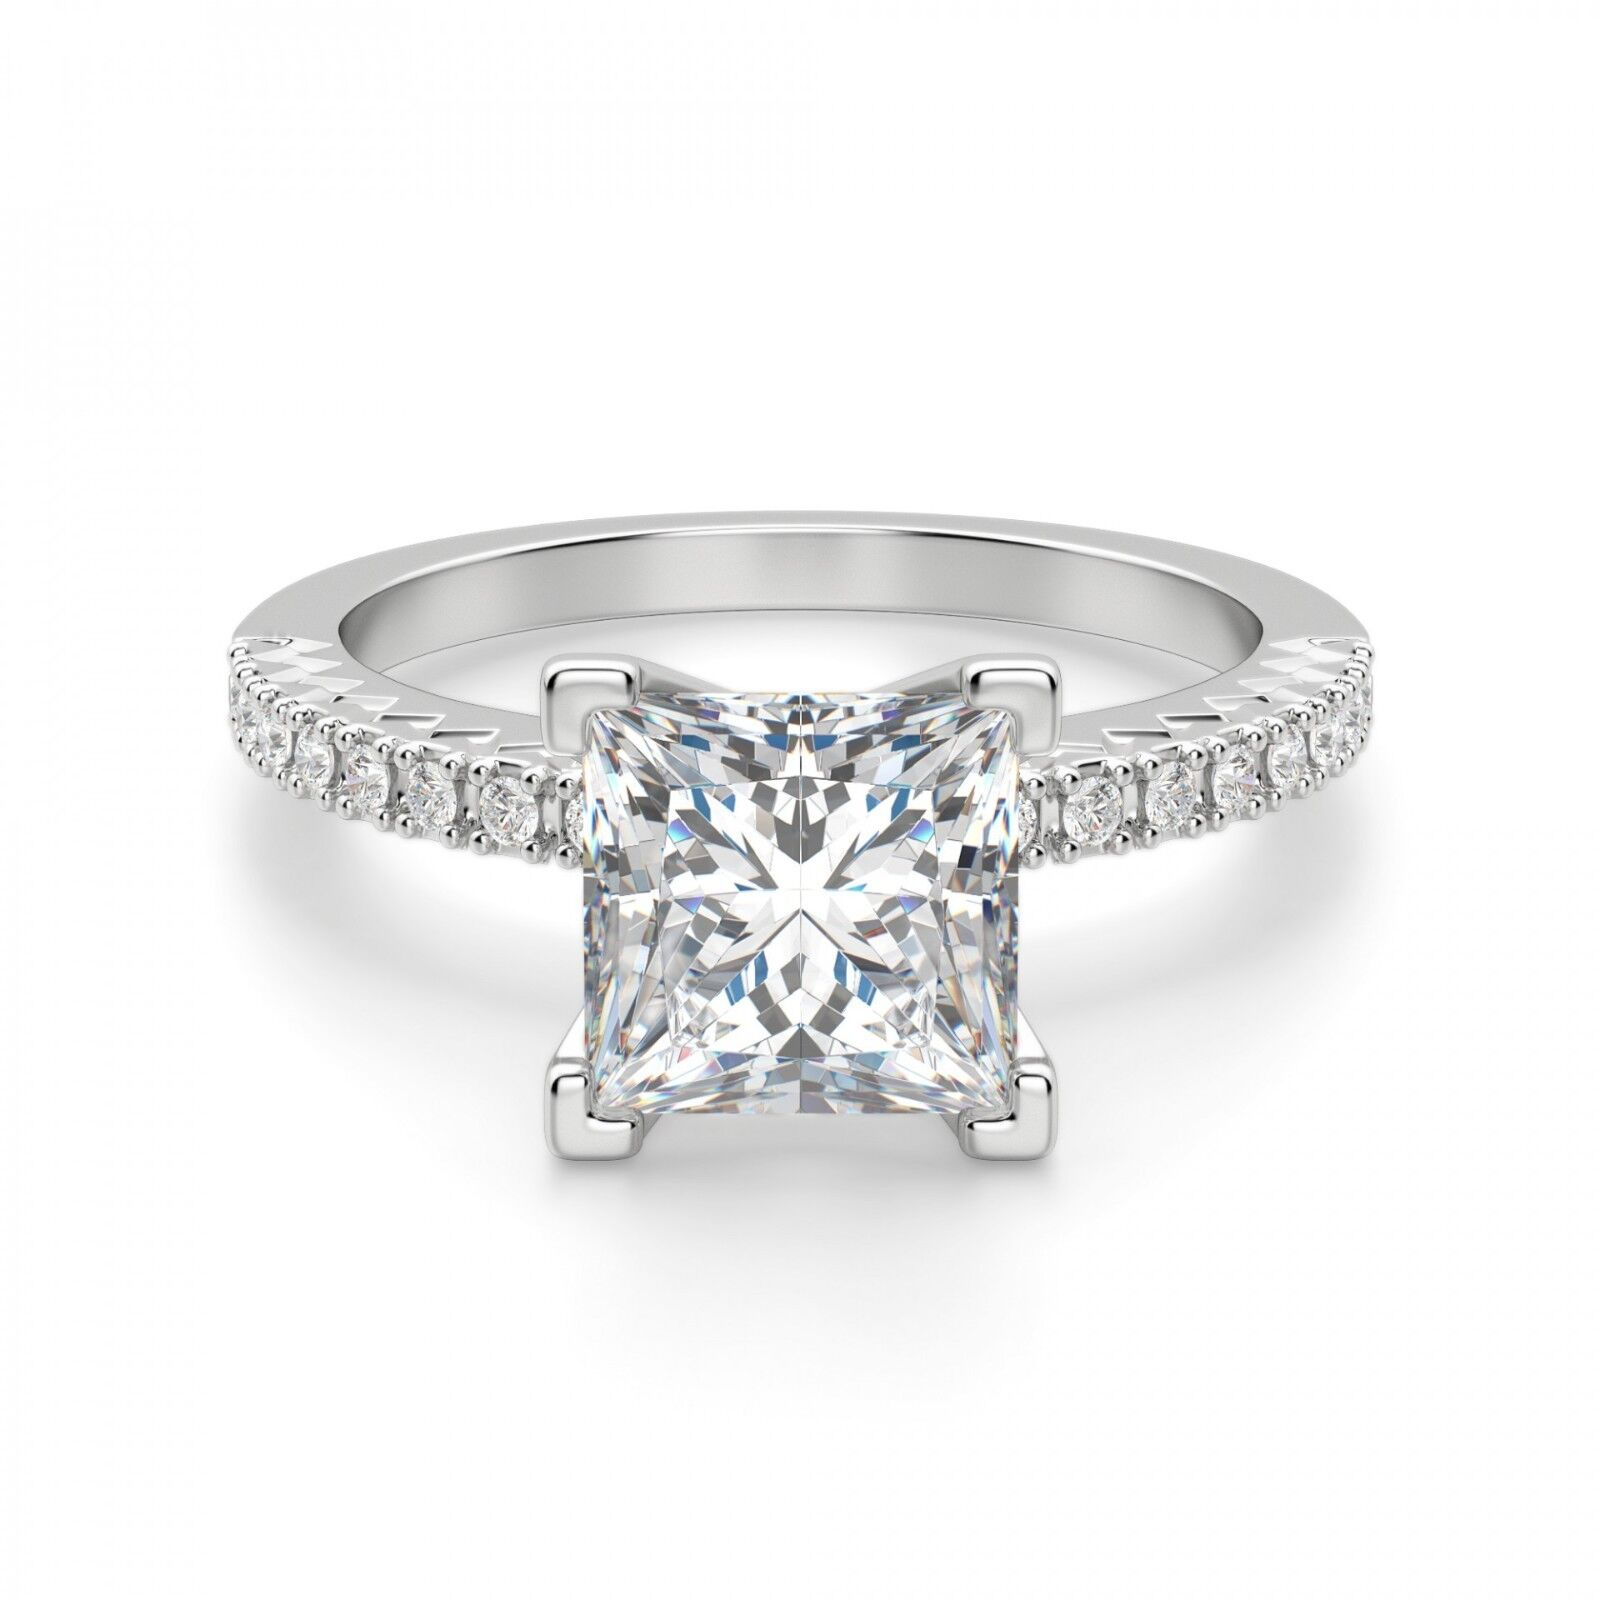 2.30 Ct Princess Cut Diamond Engagement Ring 14K Solid White gold Rings Size 5 6